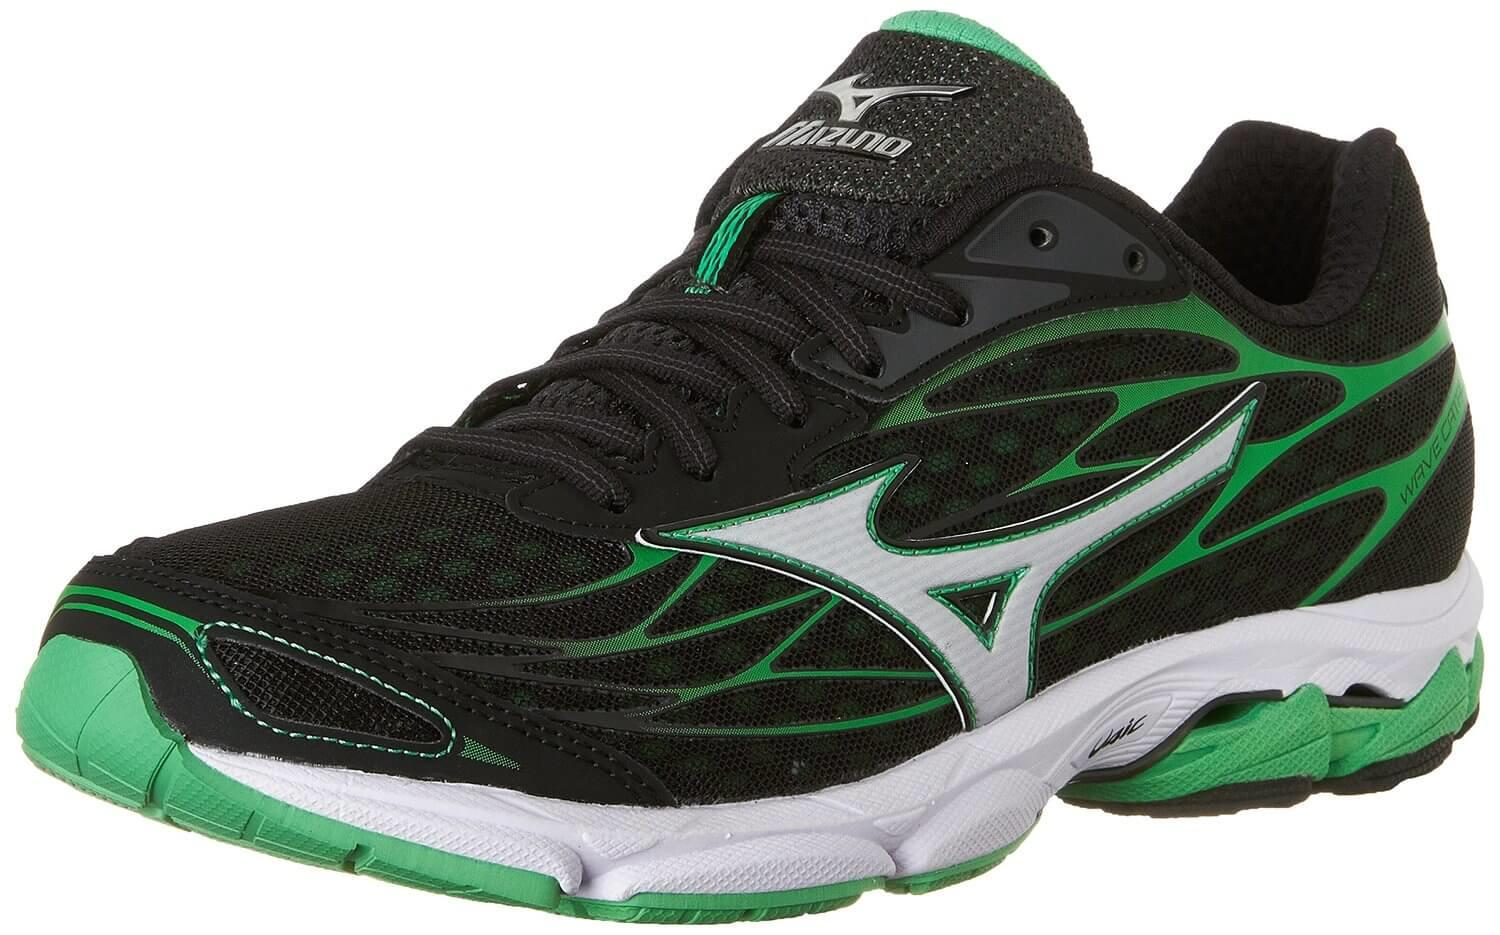 The Mizuno Wave Catalyst was inspired by the desire to encourage the promotion of sports.